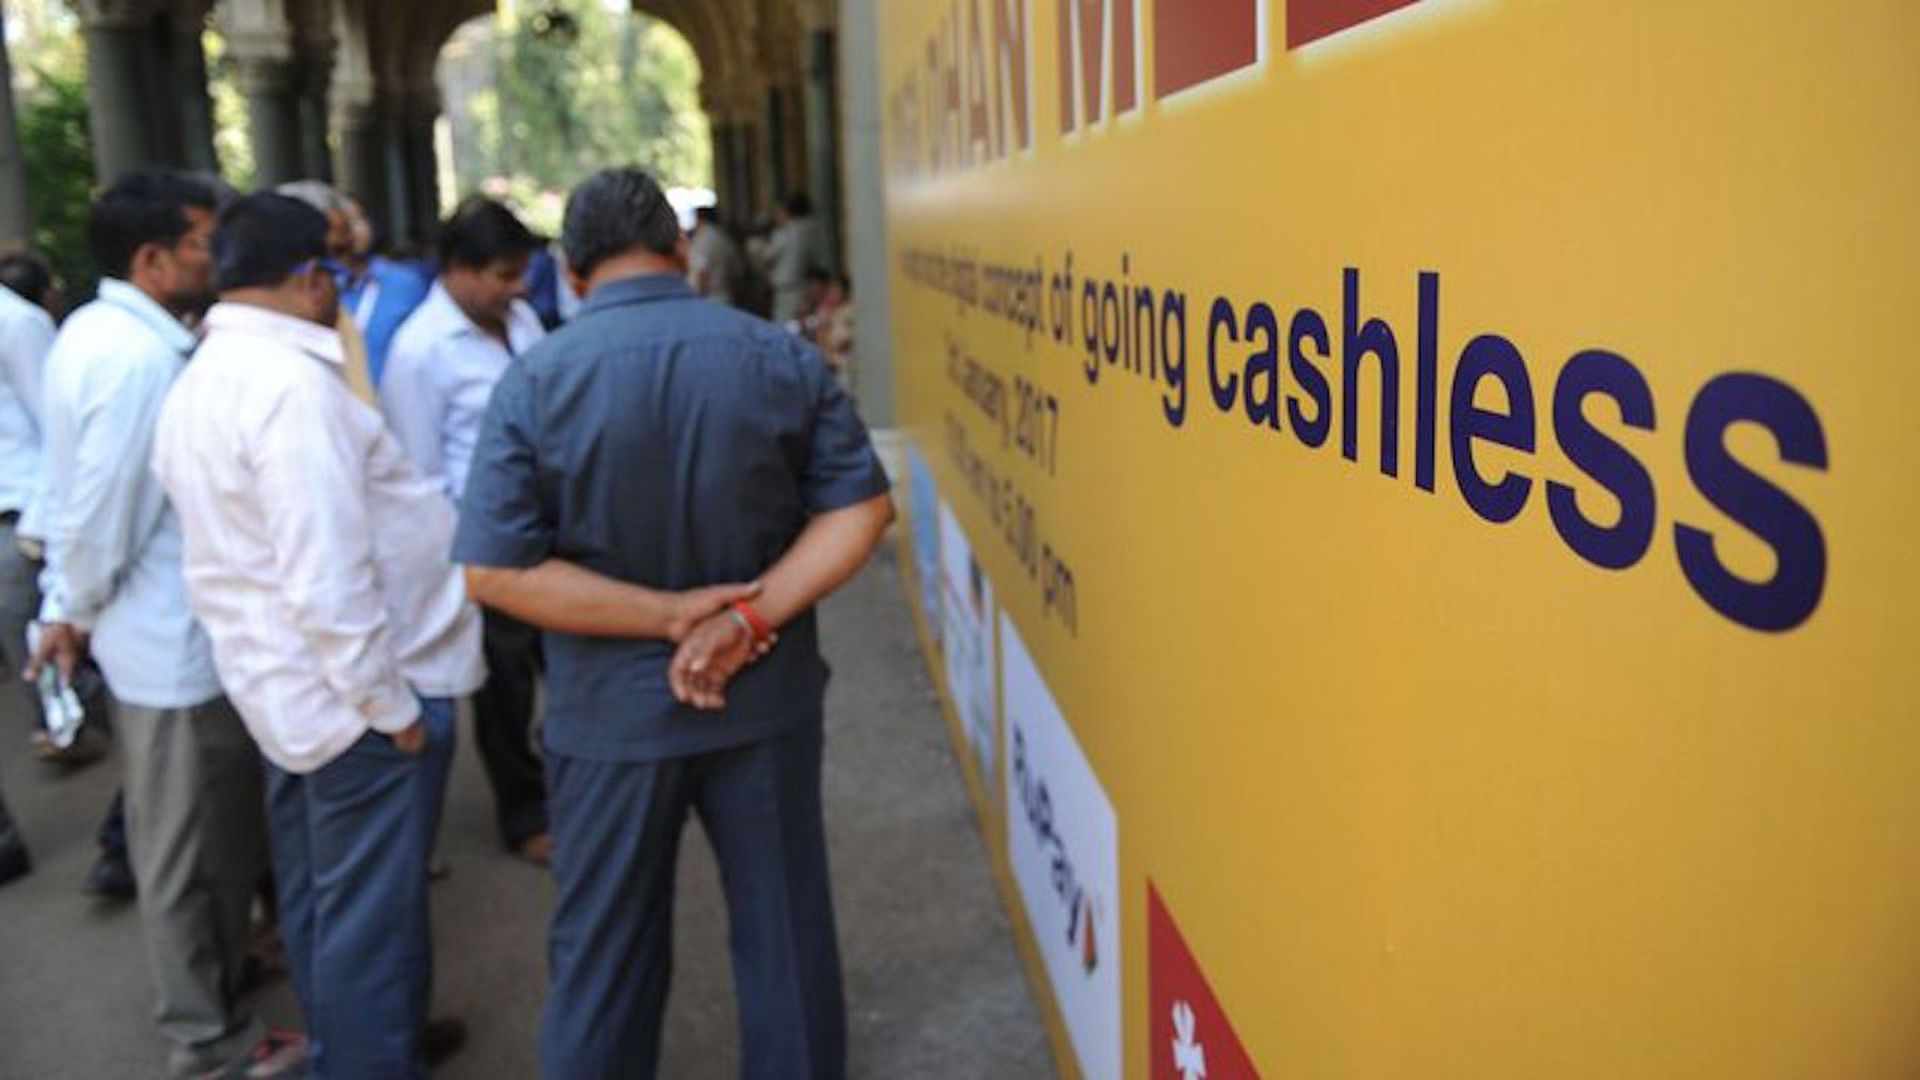 A billboard promoting e-payments in Mumbai